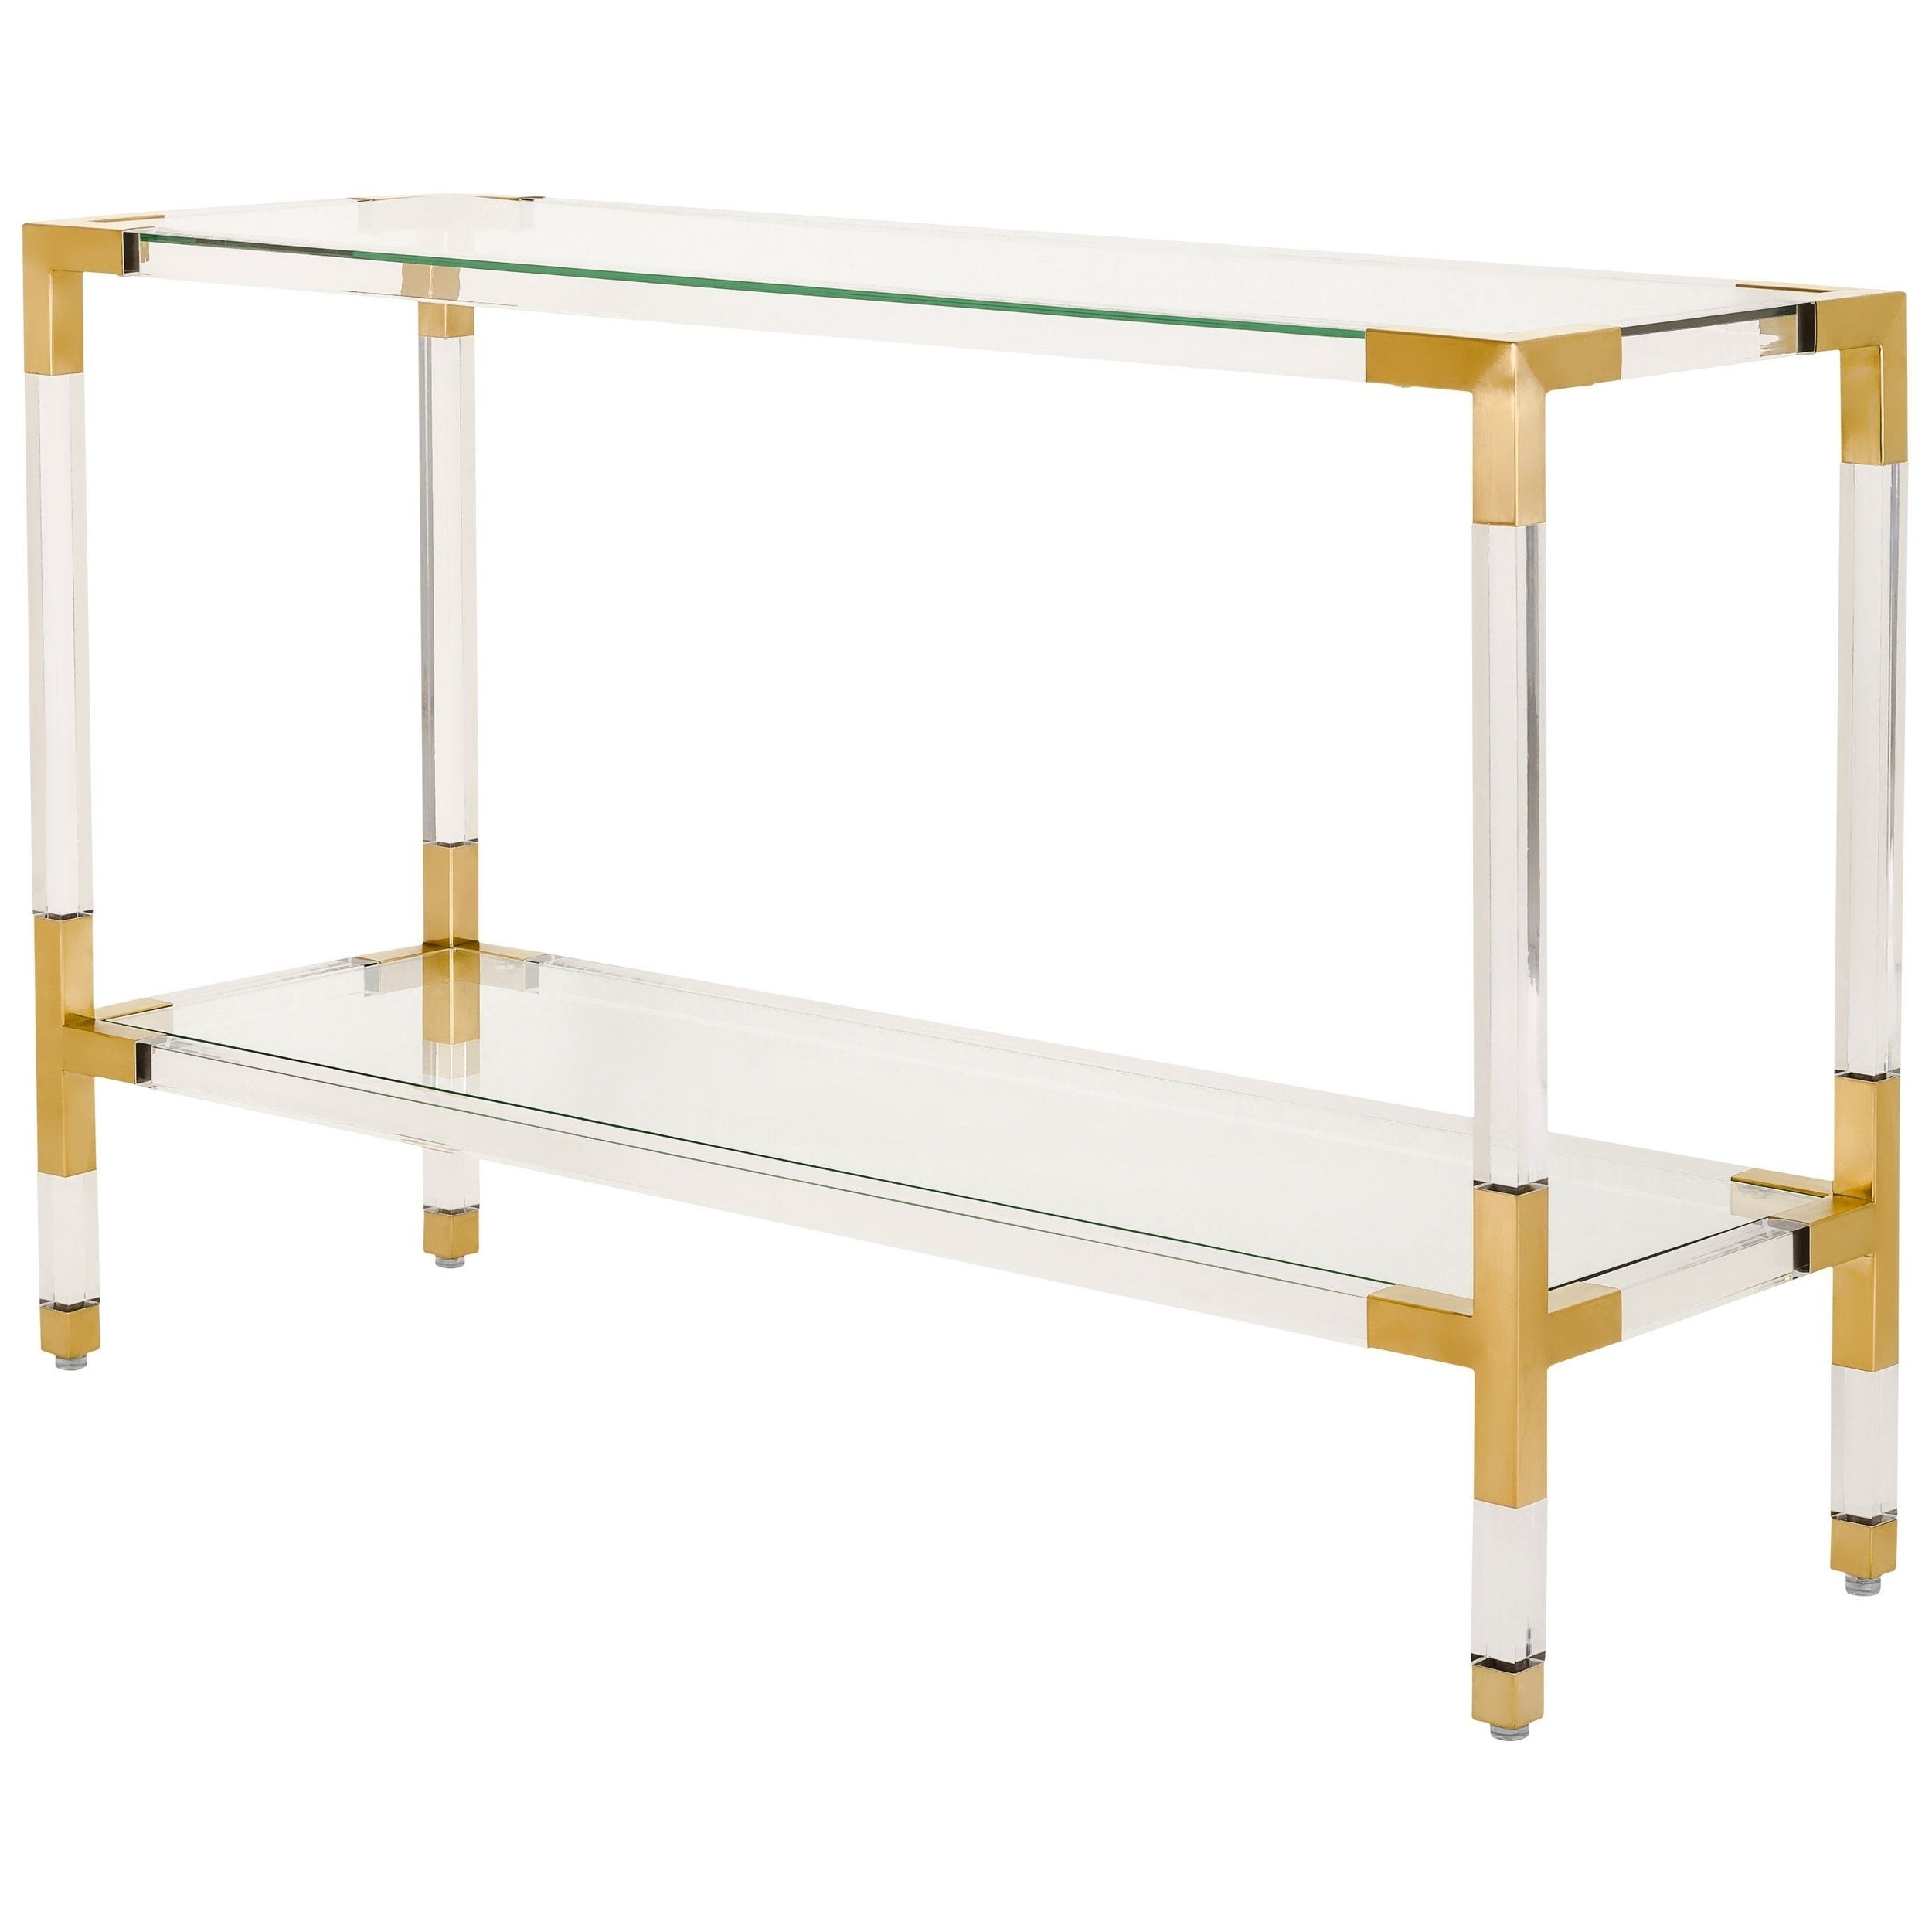 Safavieh Couture Arverne Acrylic Console , Clear | Pinterest Throughout Parsons Clear Glass Top & Dark Steel Base 48x16 Console Tables (View 17 of 20)